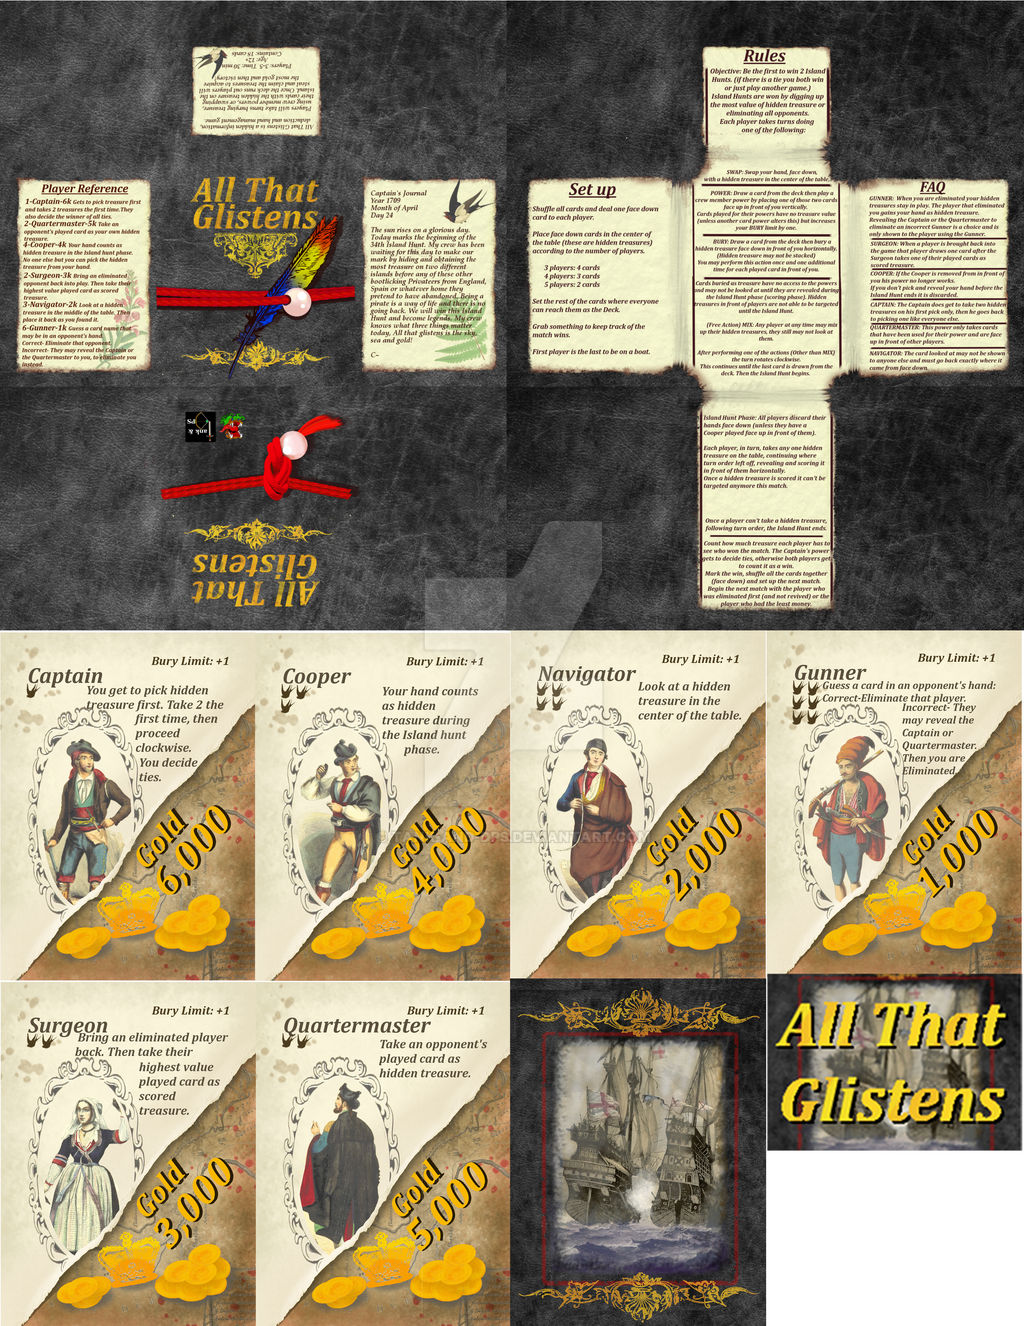 All that Glistens image sheet